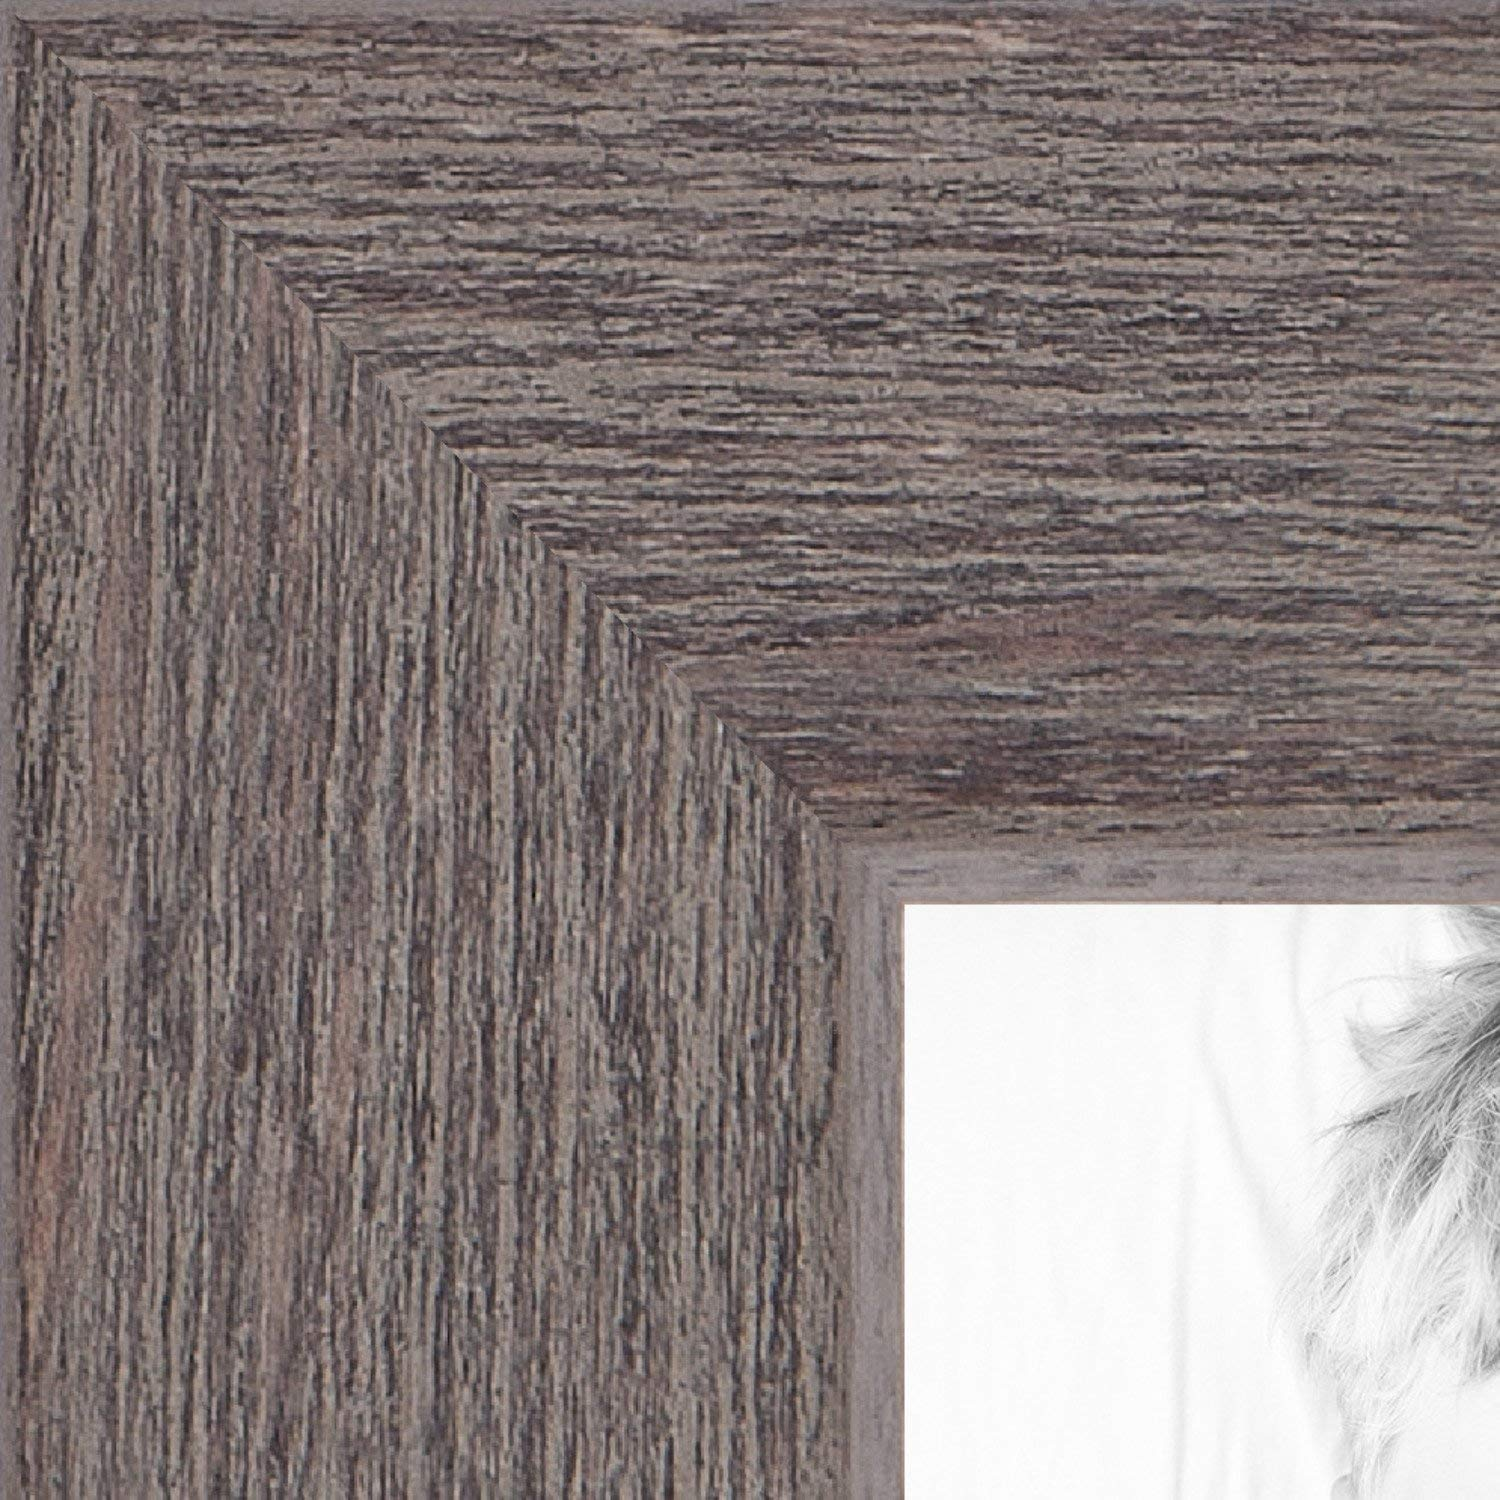 ArtToFrames 20x29 inch Gray Rustic Barnwood Wood Picture Frame, 2WOM0066-77900-YGRY-20x29, 20 x 29'',